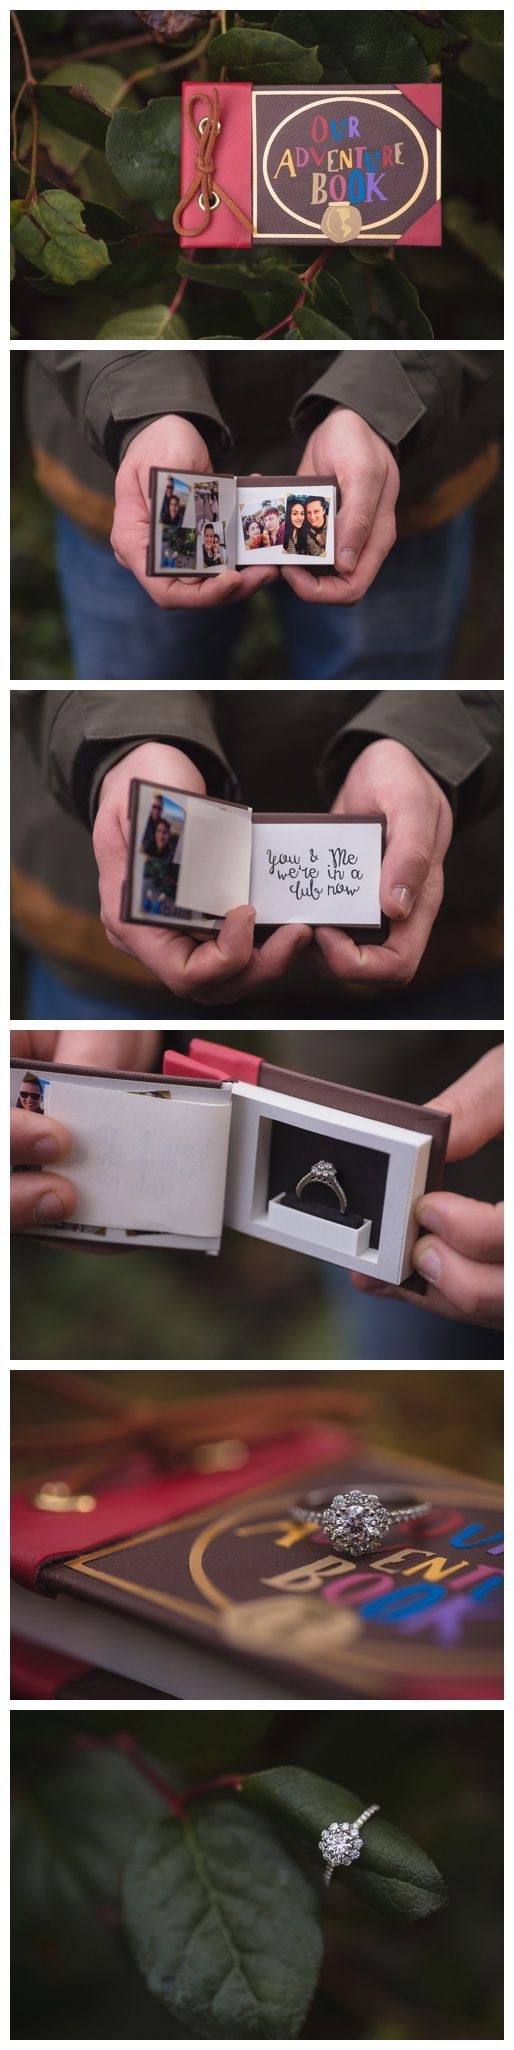 Awesome Custom Ring Box inspired by the movie UP! This was the perfect surprise for this adventurous couple! Watch the Proposal here: https://www.youtube.com/watch?v=9y92mPfYZ5c: